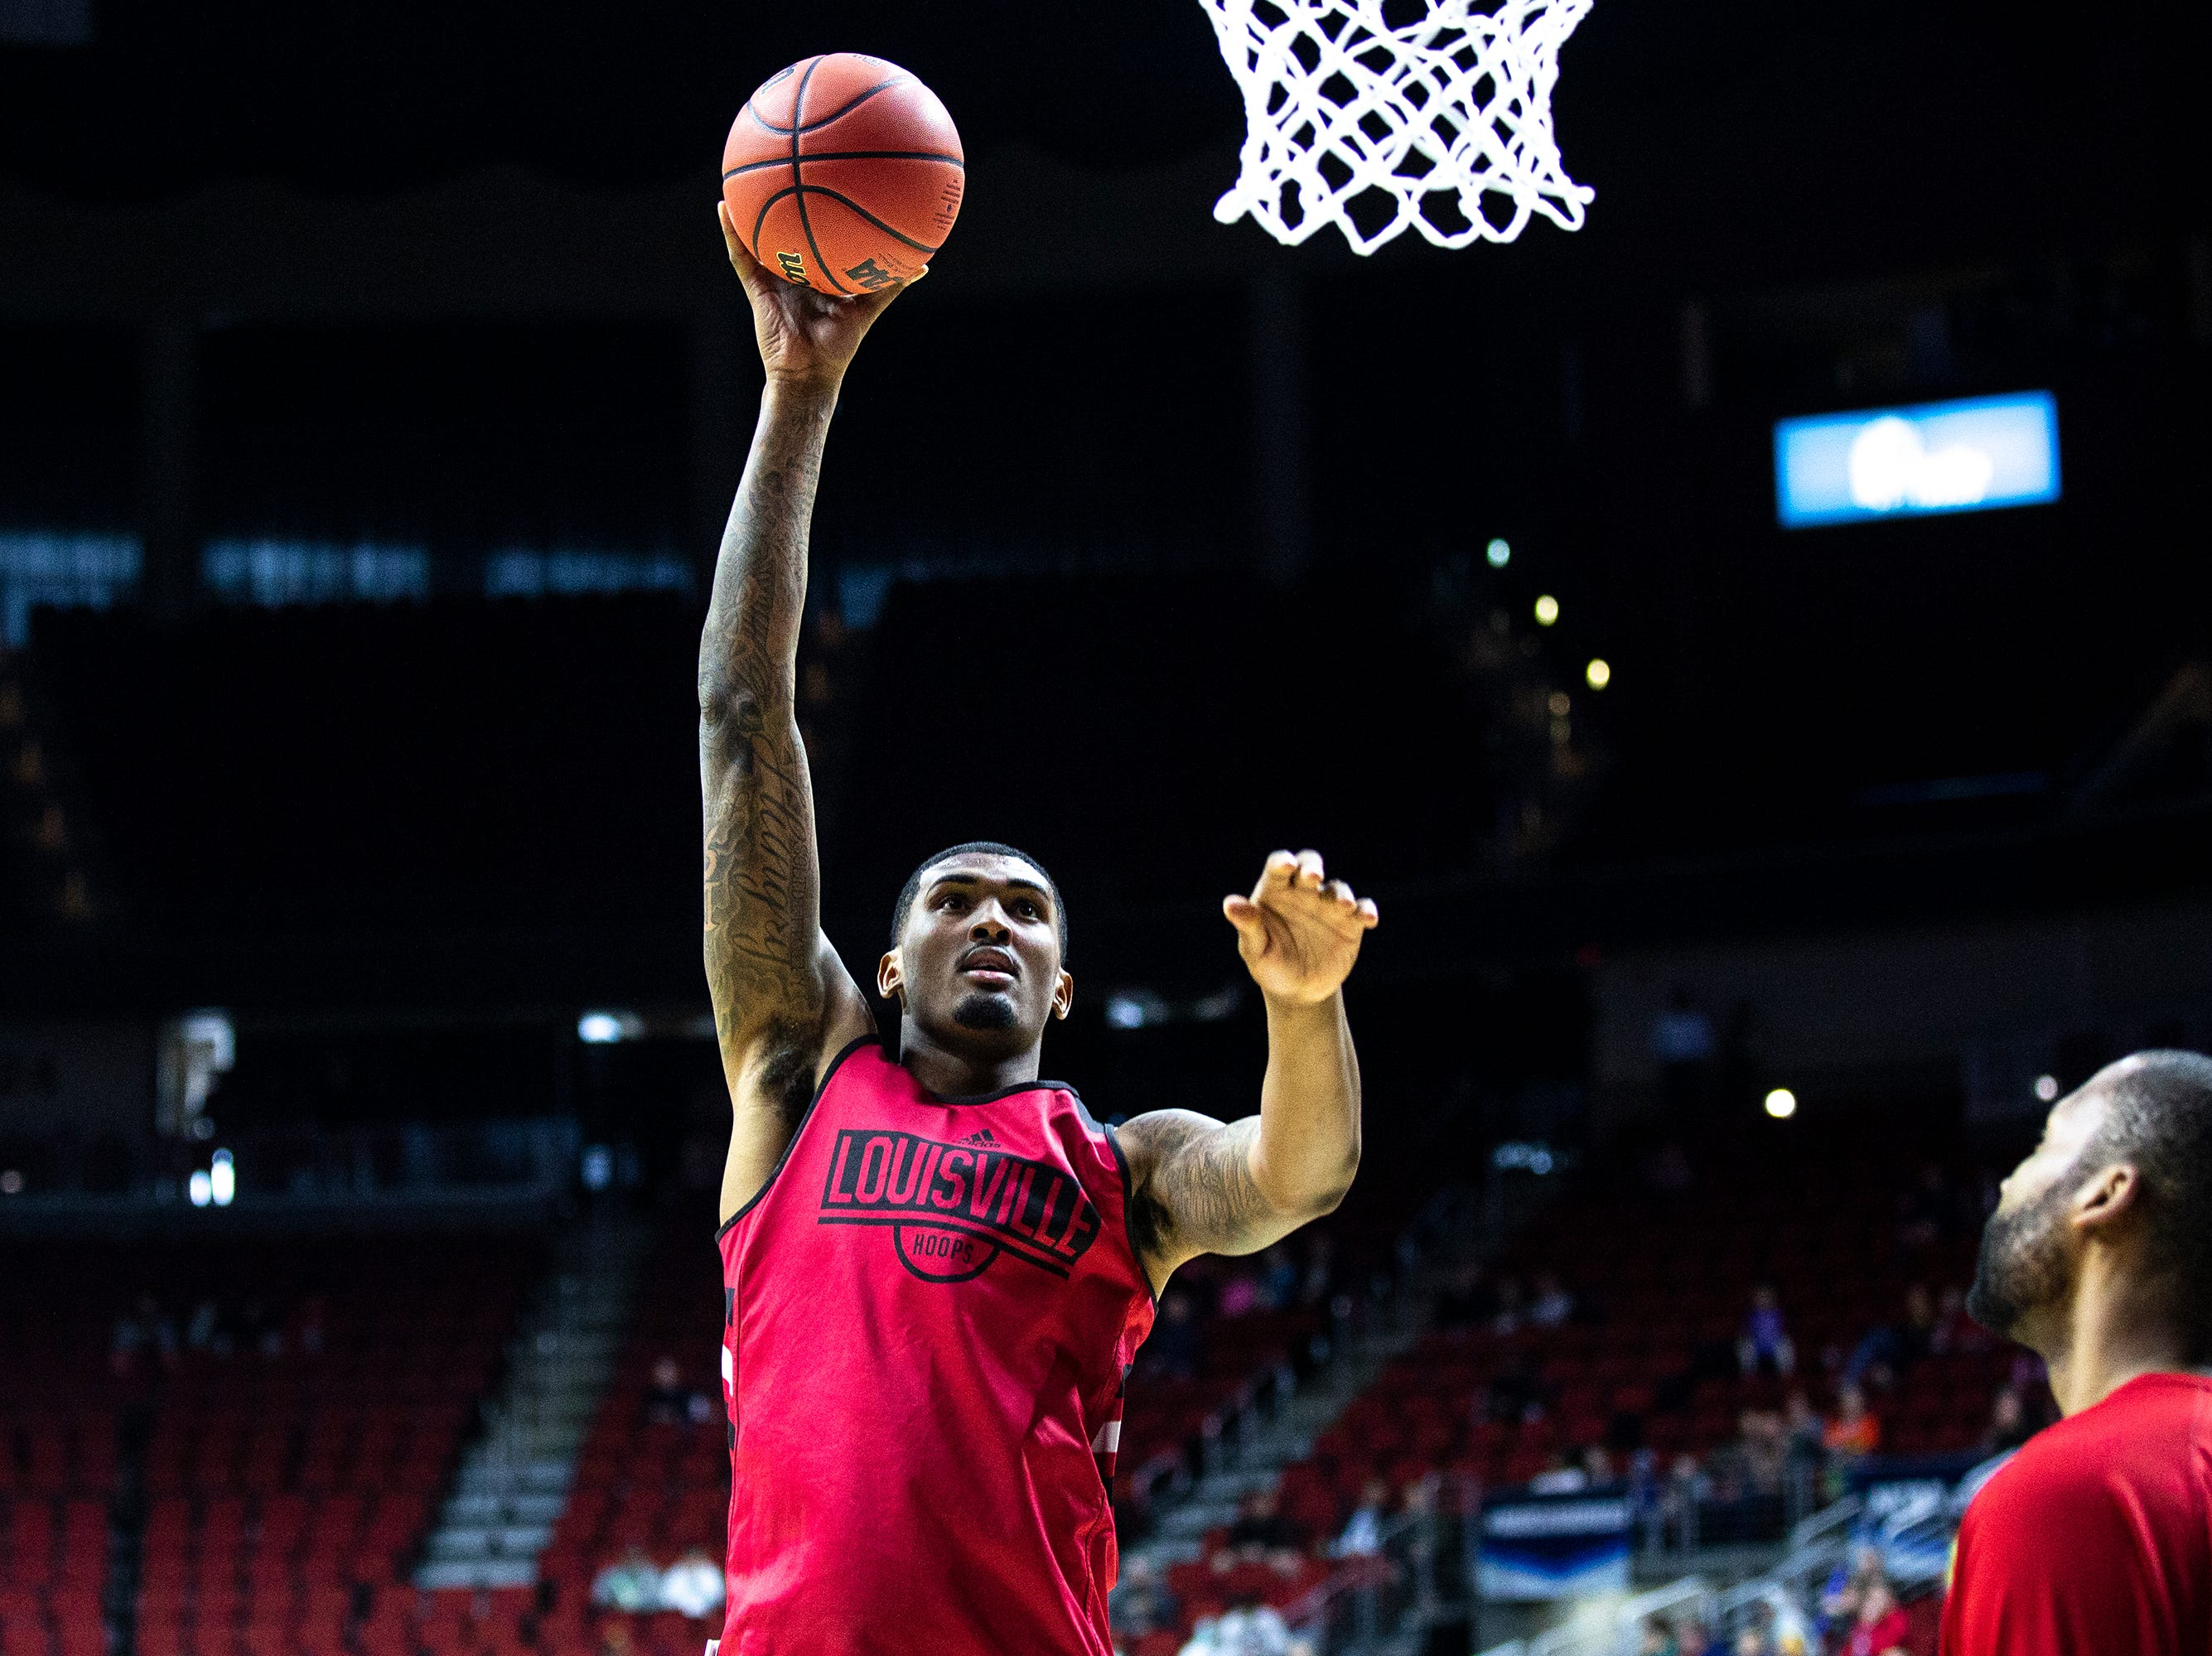 Louisville's Malik Williams shoots the ball during Louisville's open practice before the first round of the NCAA Men's Basketball Tournament on Wednesday, March 20, 2019, at Wells Fargo Arena in Des Moines, Iowa.